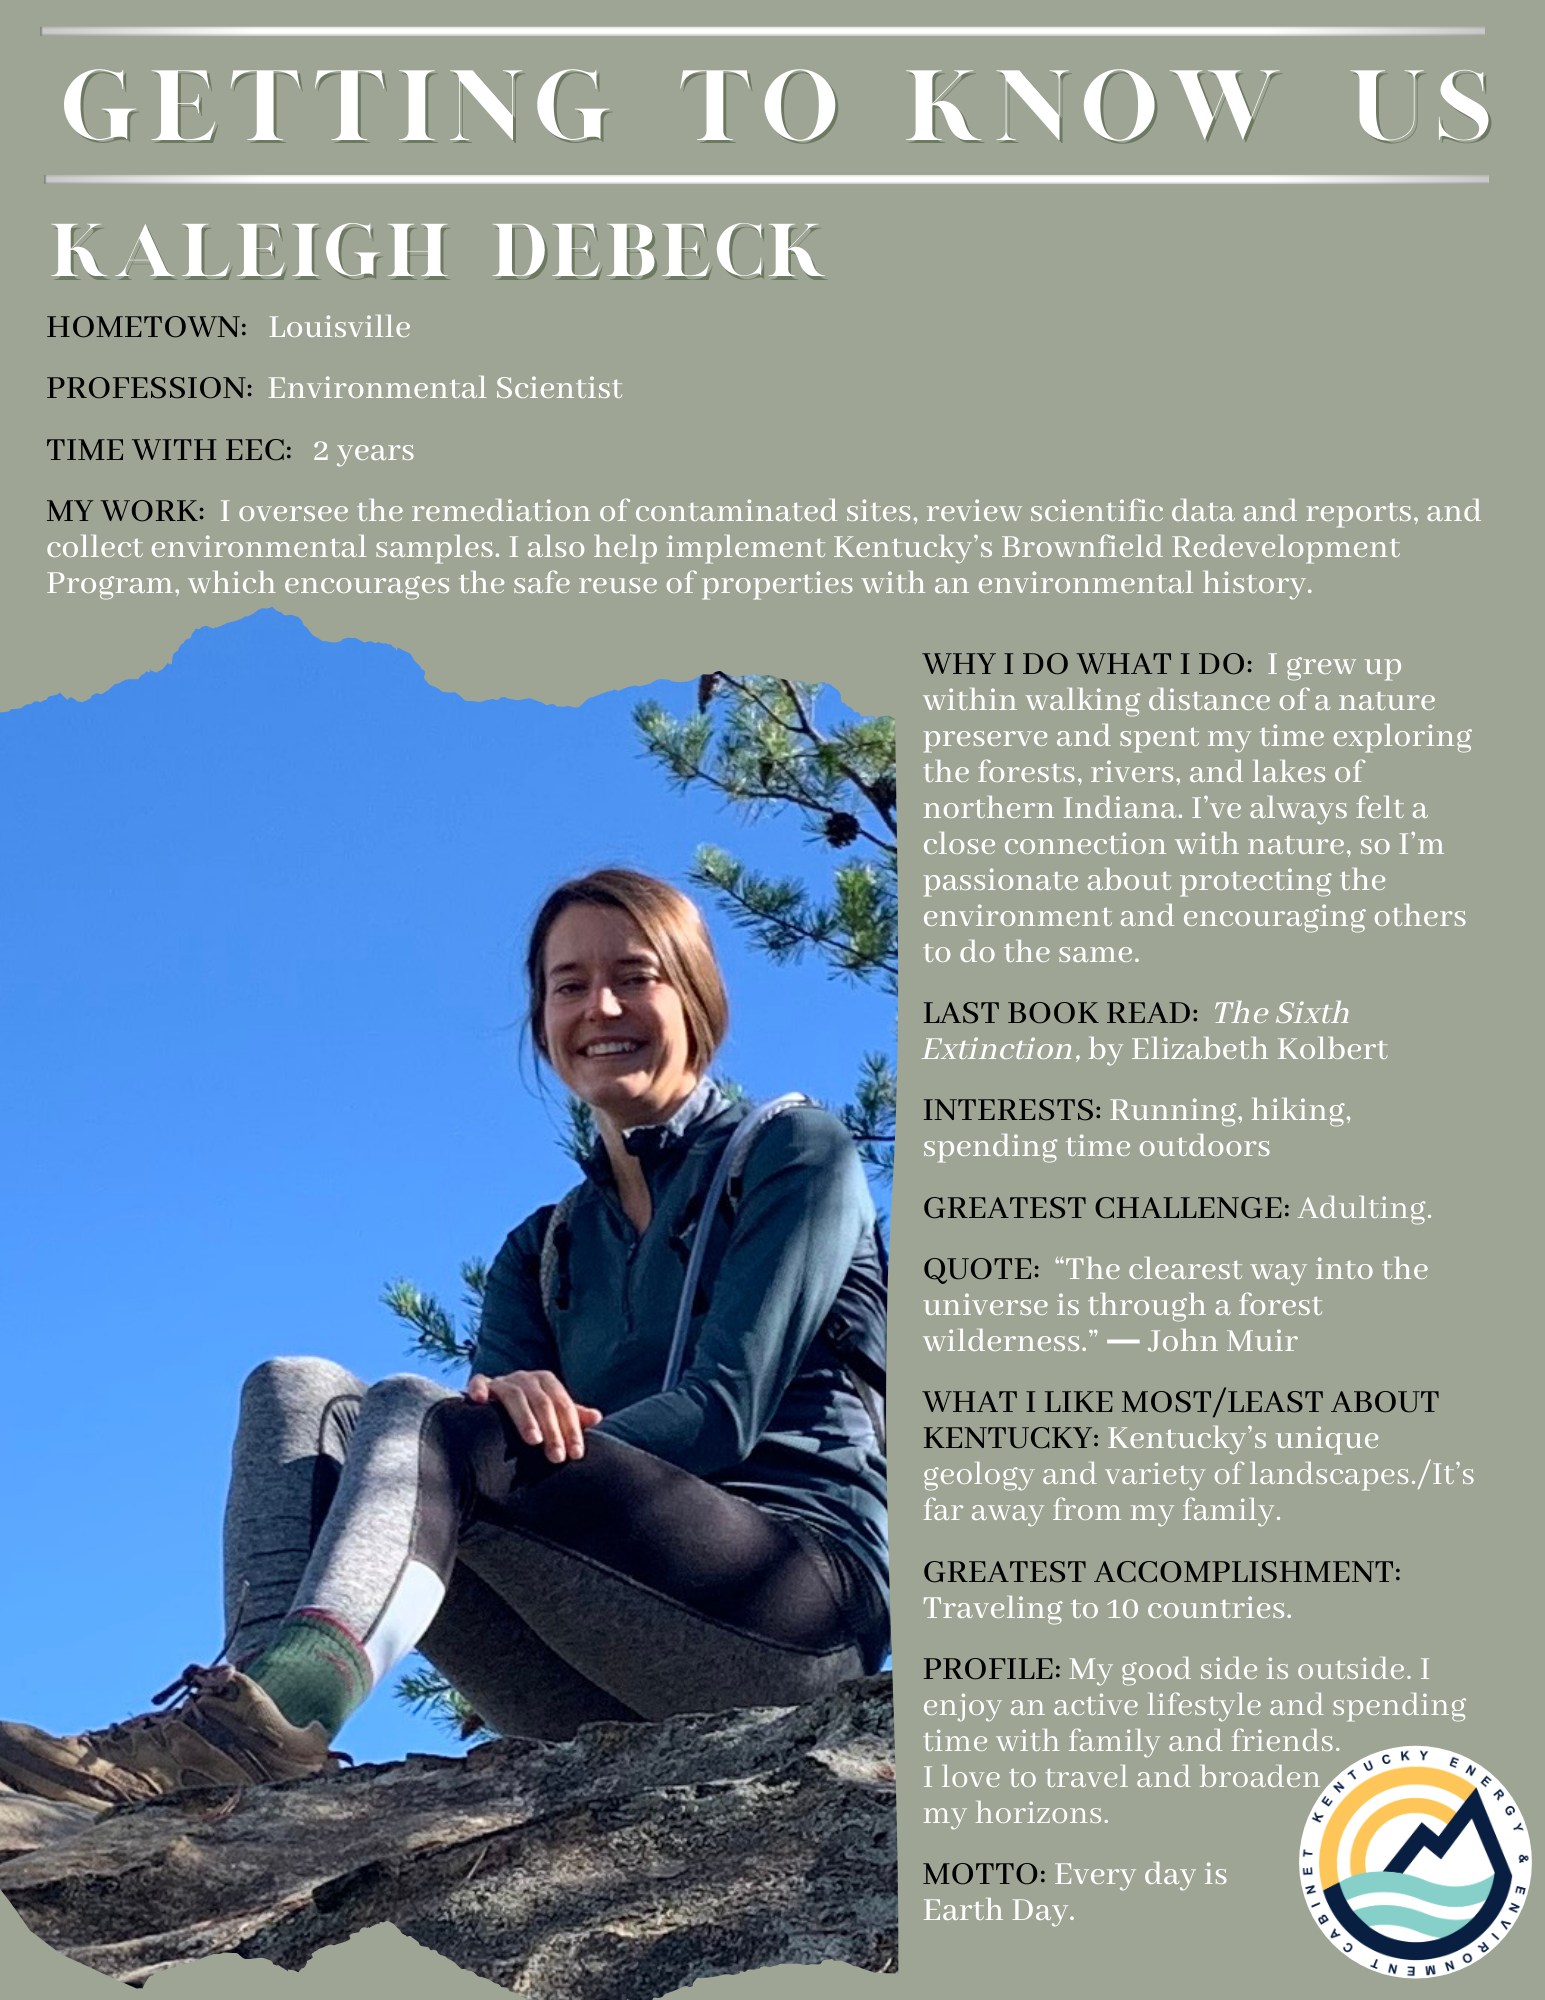 Getting to Know Us: Kaleigh Debeck